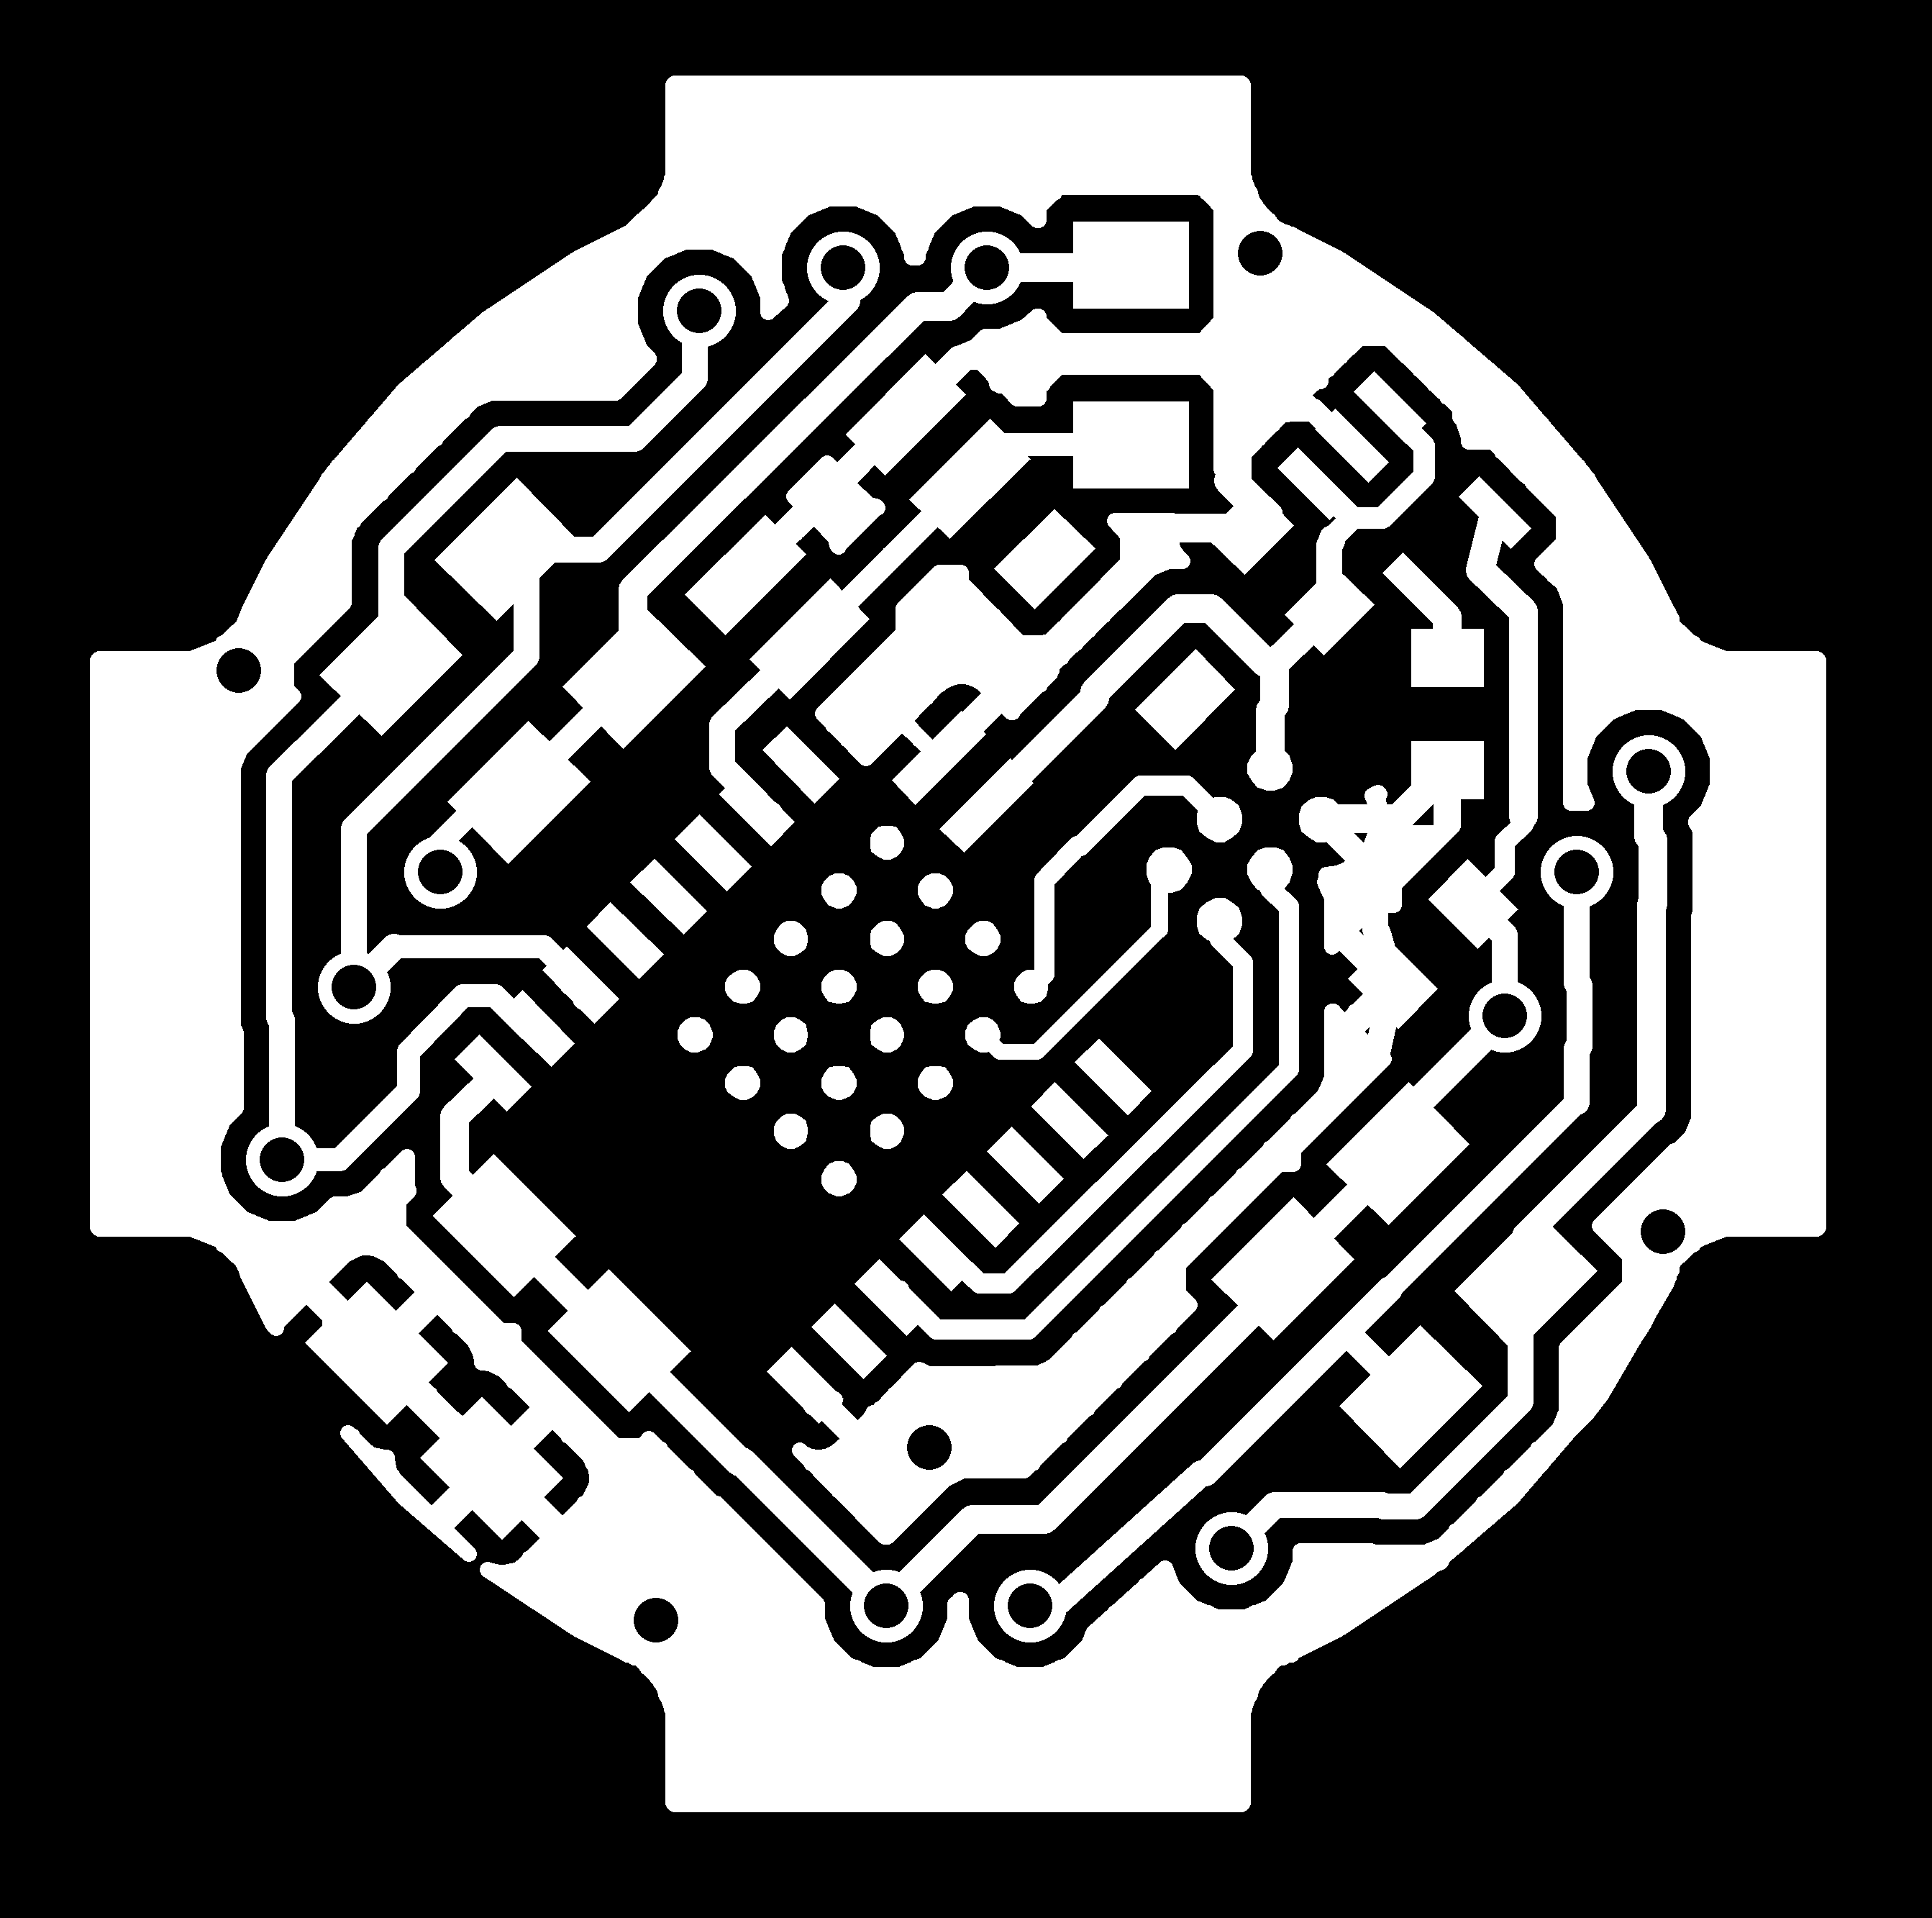 v2/loadcell-main-traces-top.png